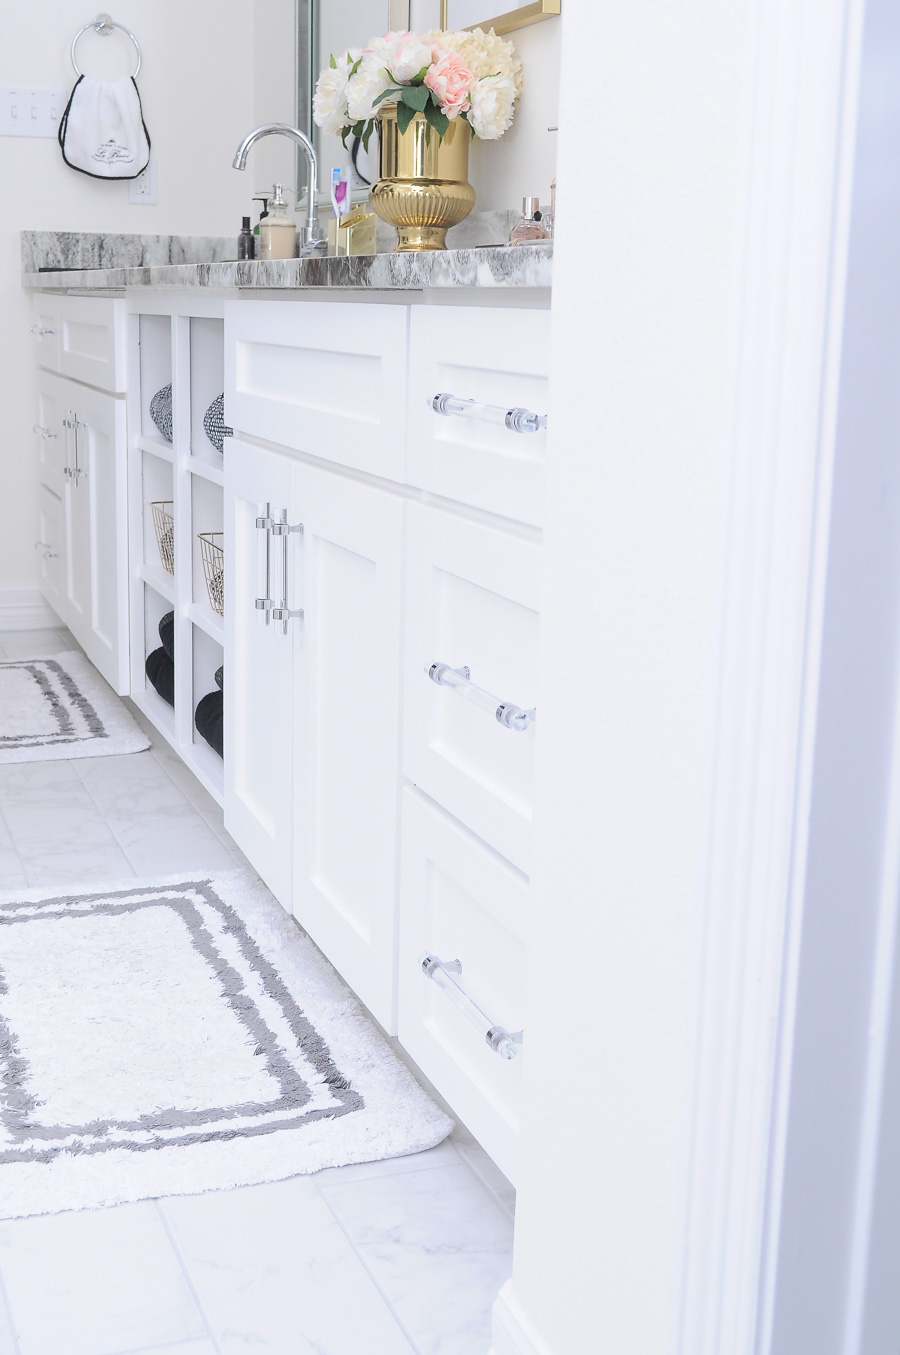 DIY tutorial on how to turn chrome and lucite cabinet pulls and hardware into a brushed satin gold finish. Perfect for bathrooms and kitchens.